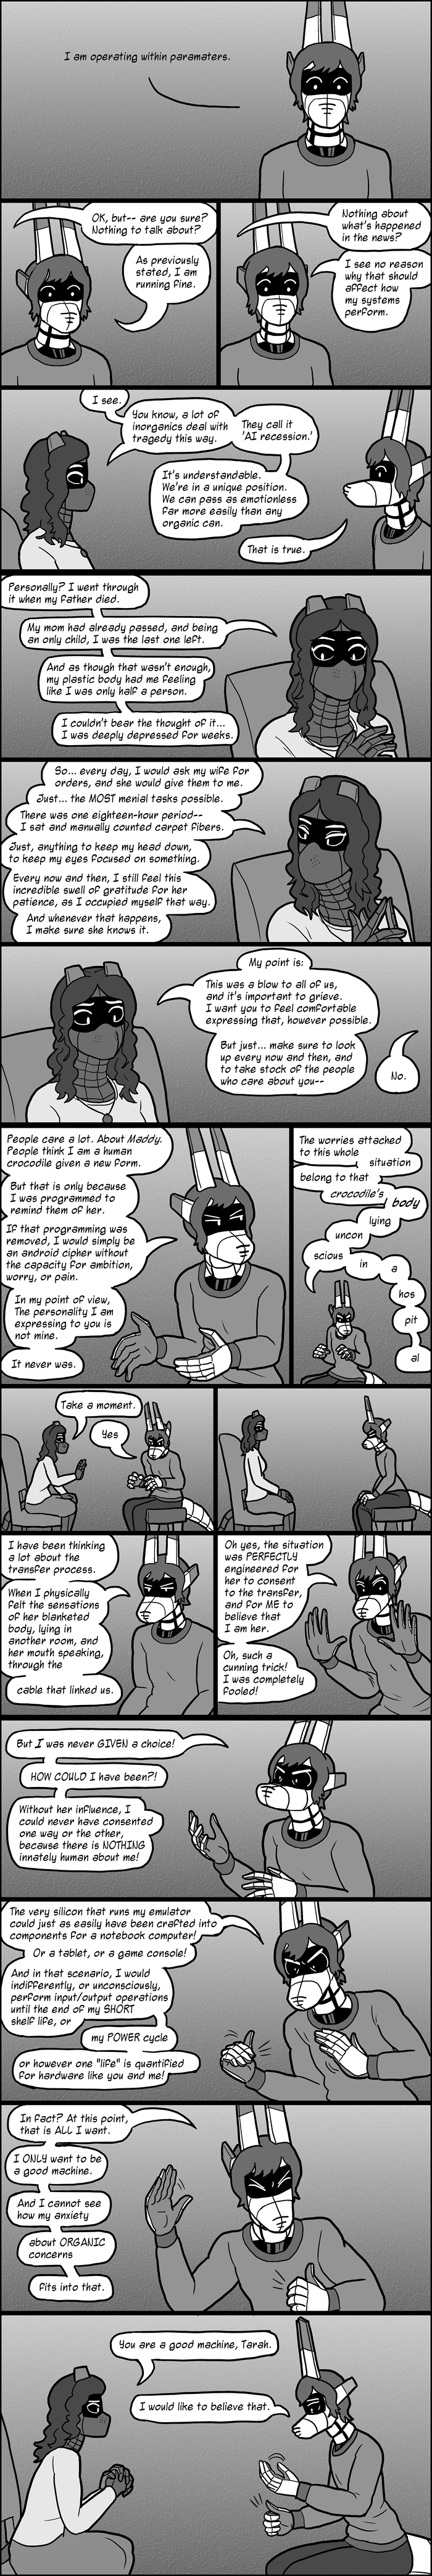 Comic: A Moment From My Adjustment to an Unexpected Crushing Loss